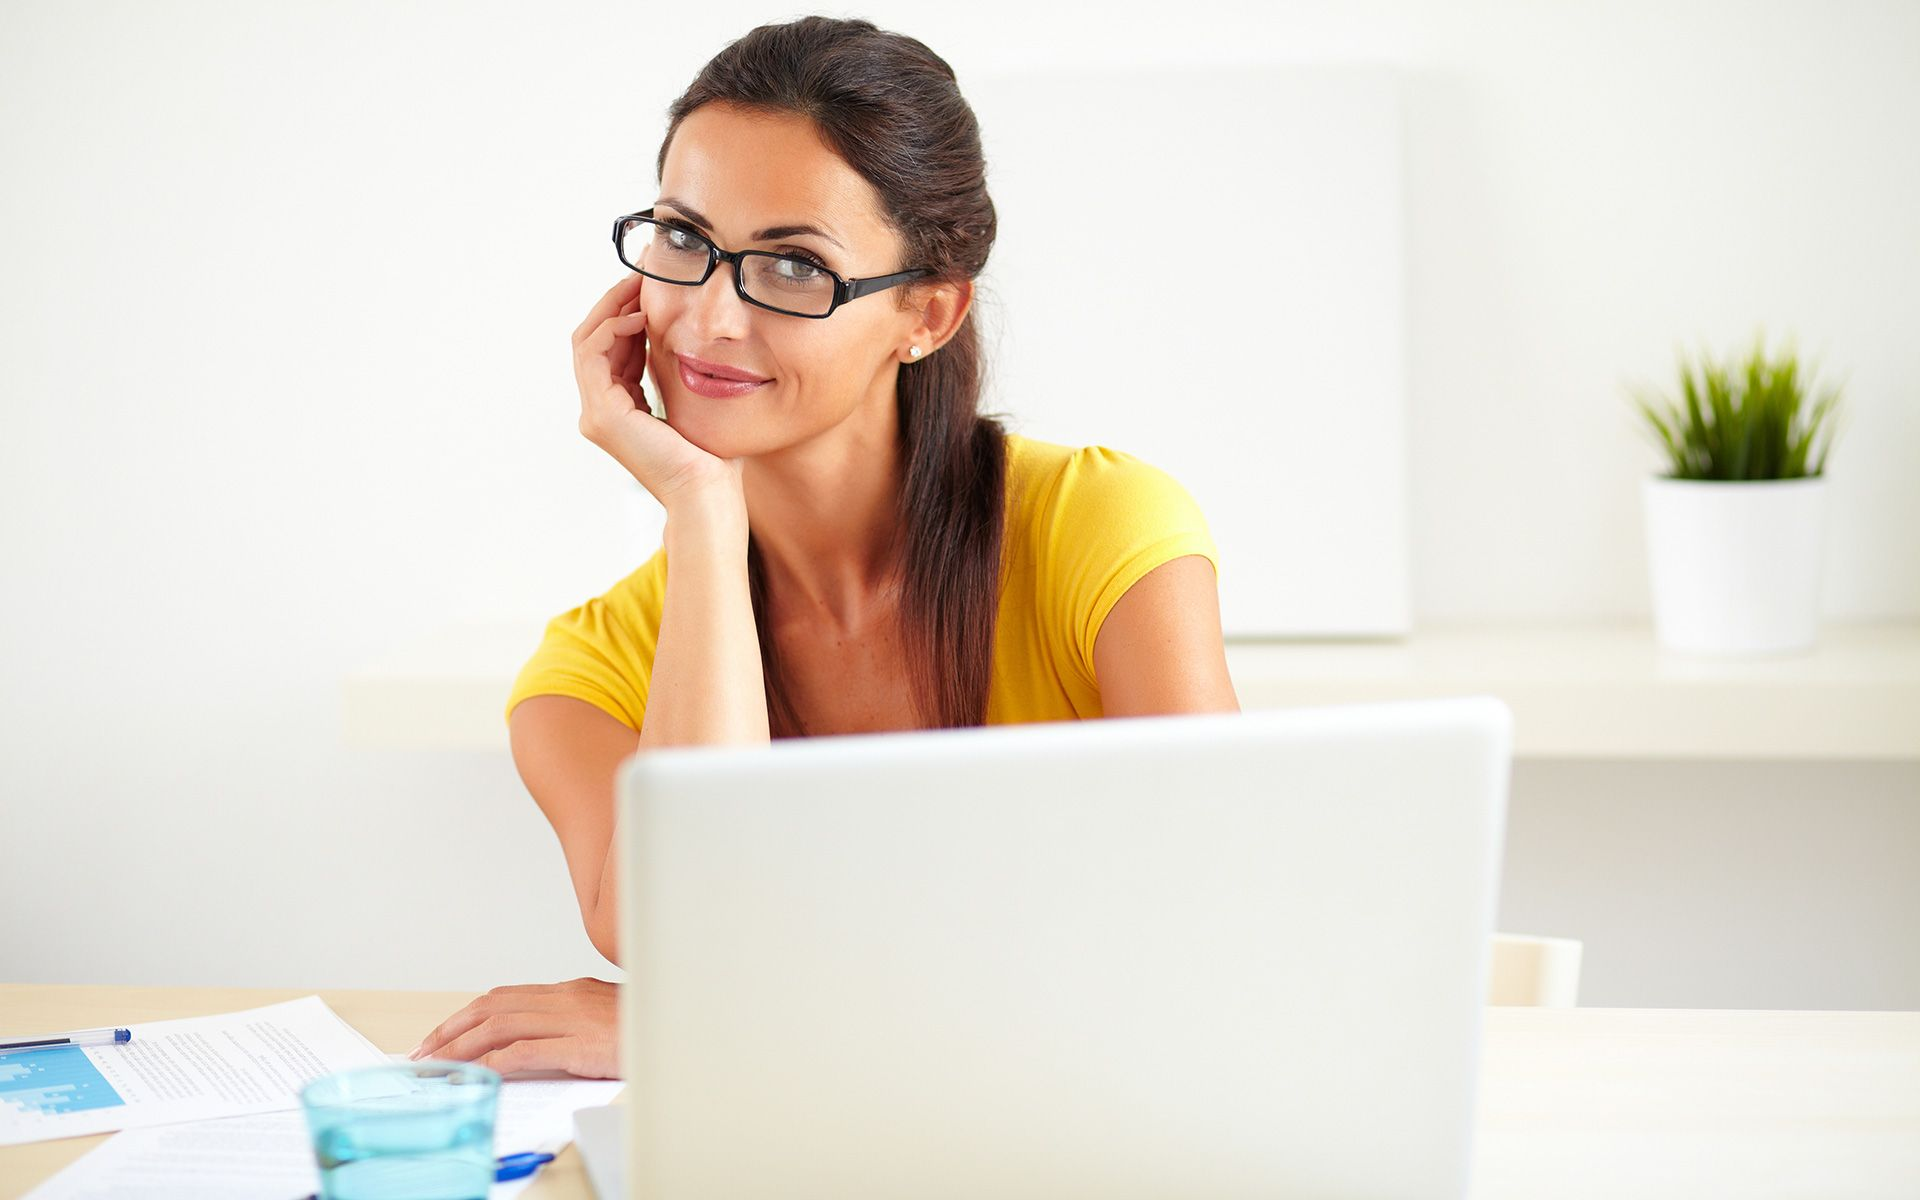 To apply fast payday loans without any hassle you just